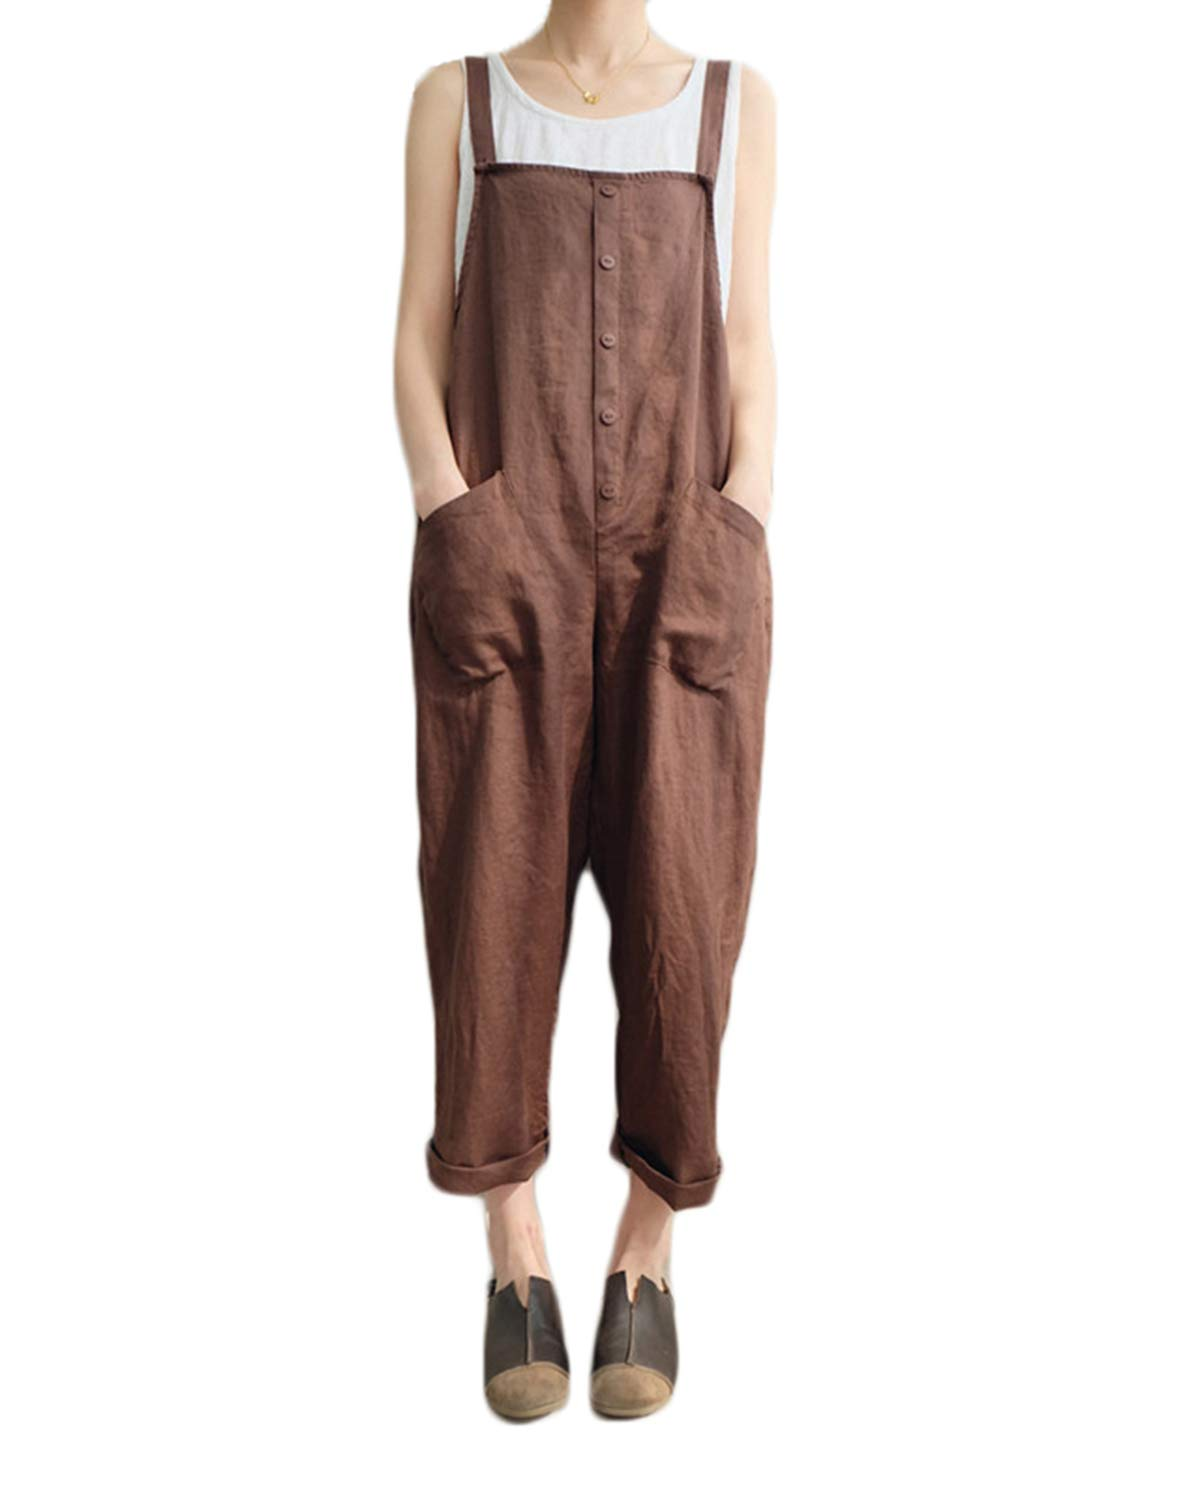 Celmia Women's Strappy Jumpsuits Overalls Casual Harem Pants Wide Leg Low Crotch Loose Trousers Coffee L